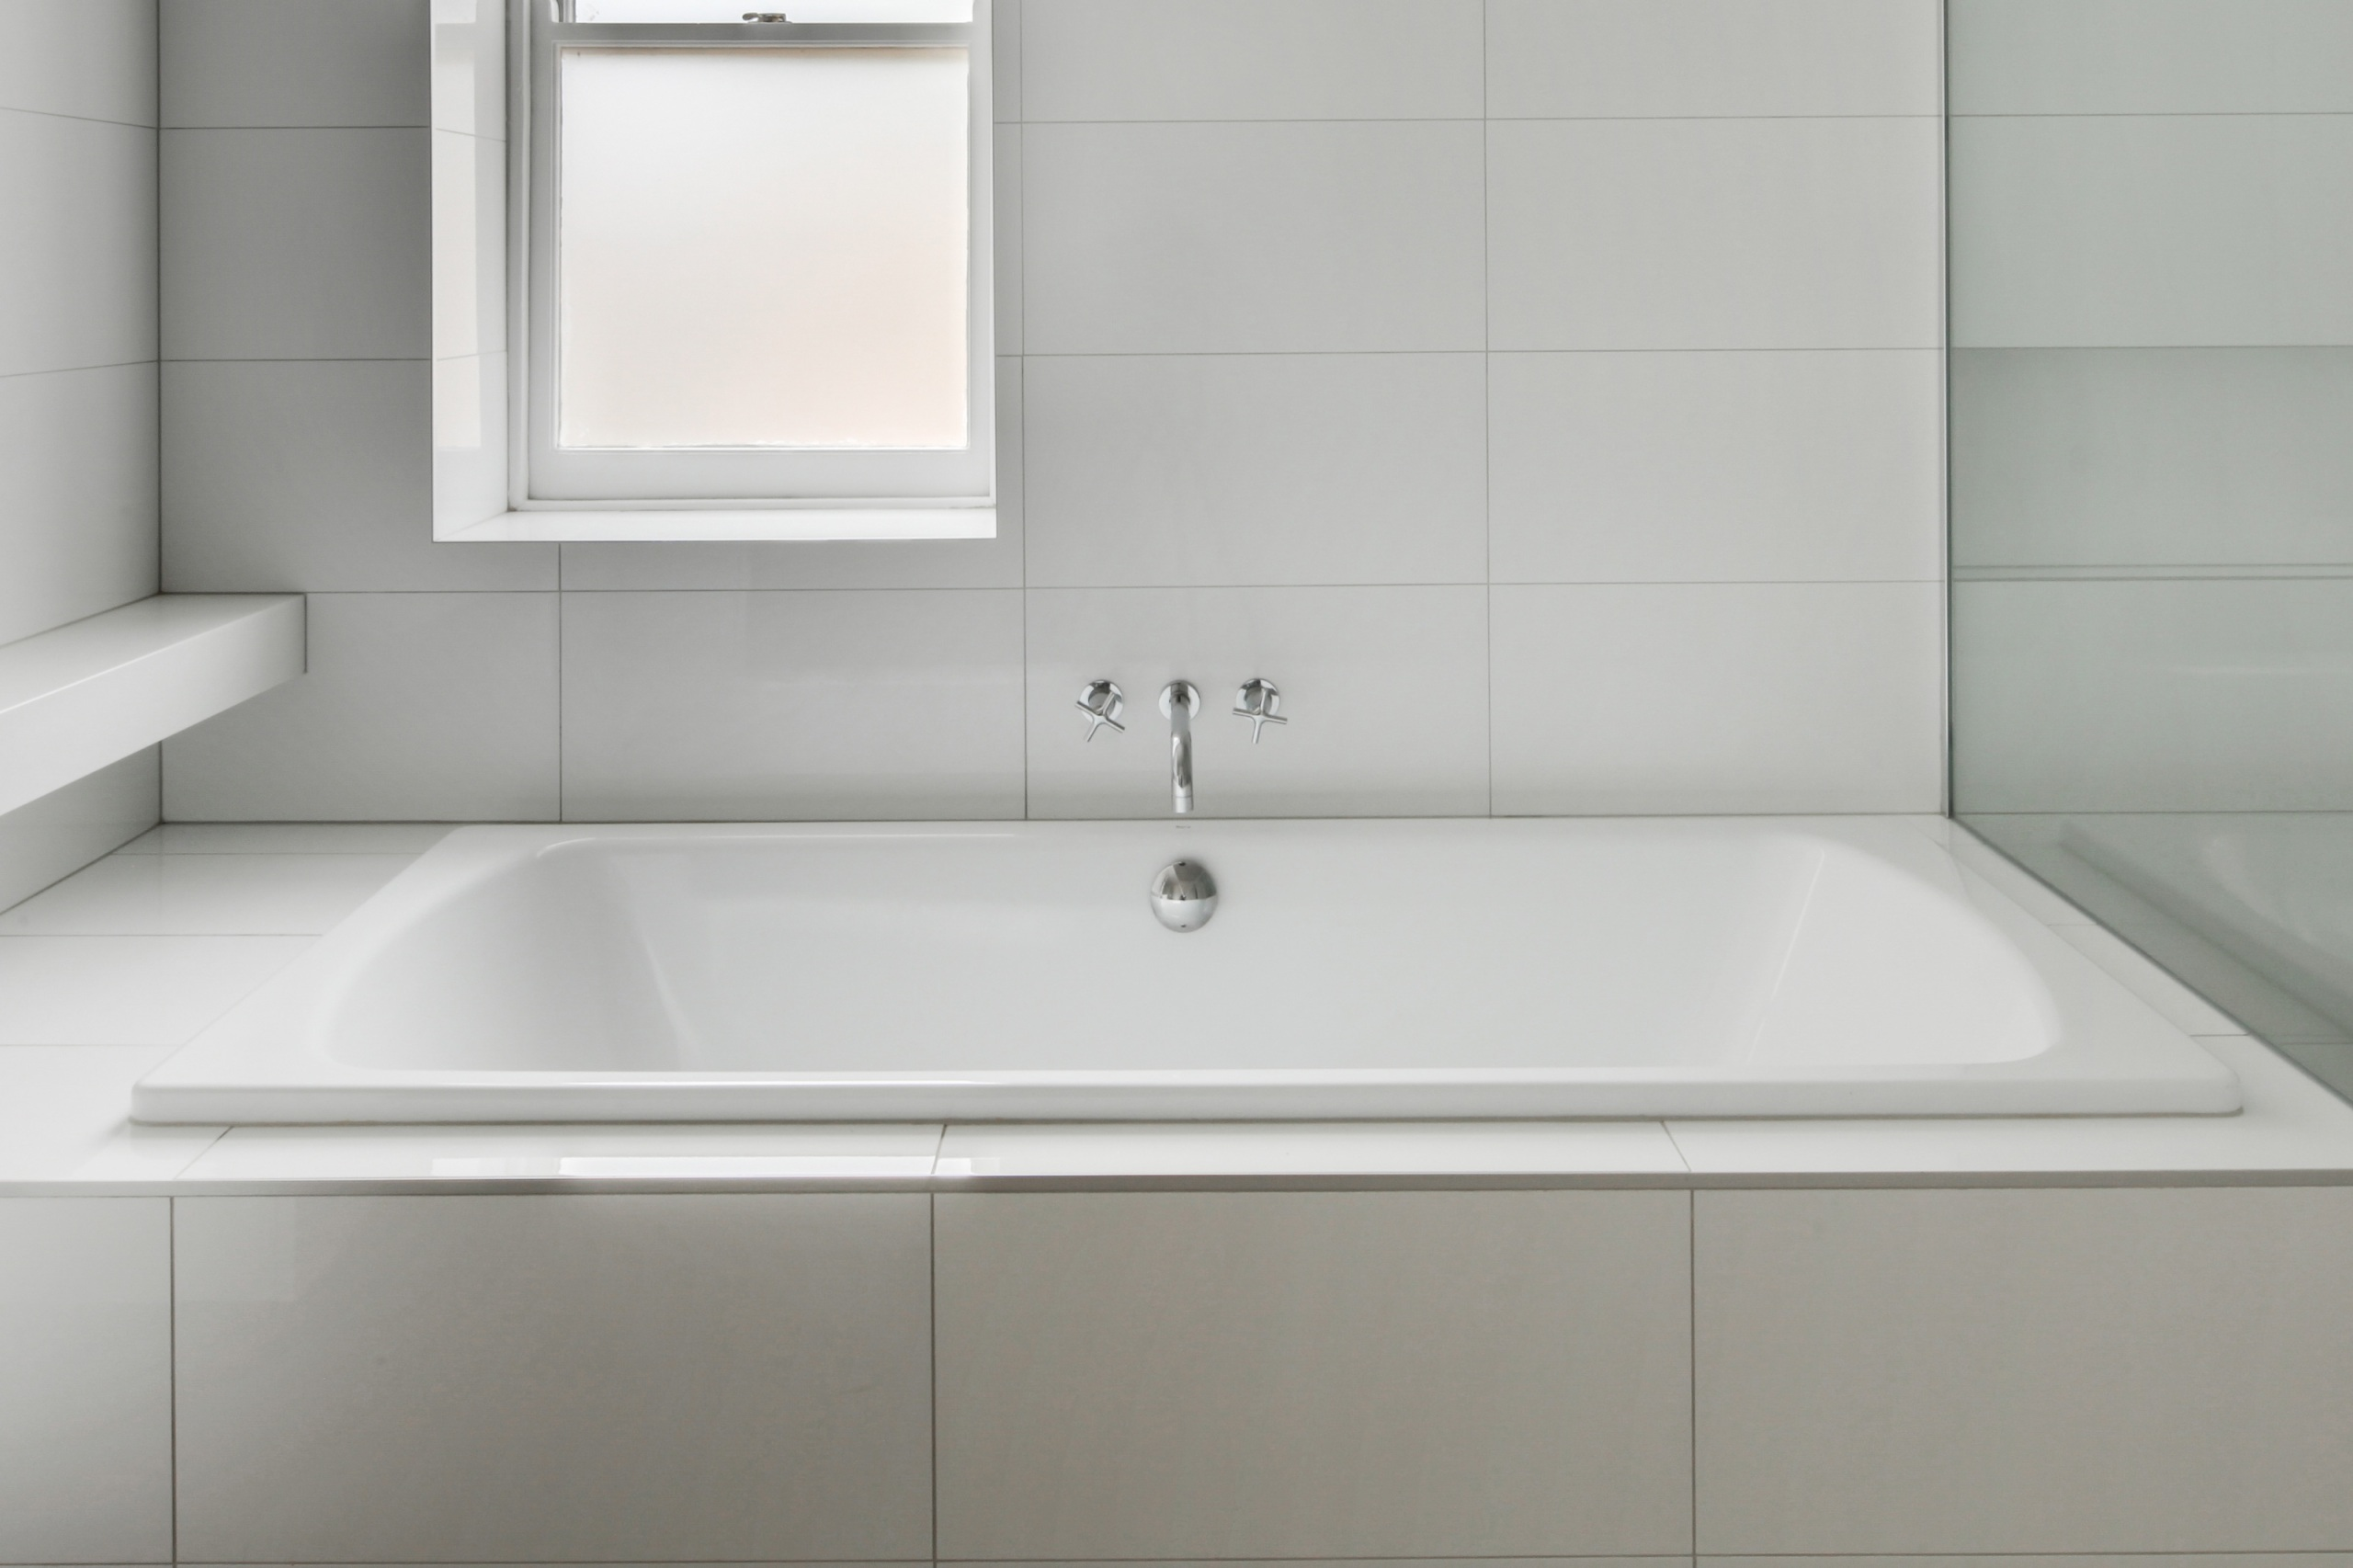 A stark, white tile bathroom with a tub and window